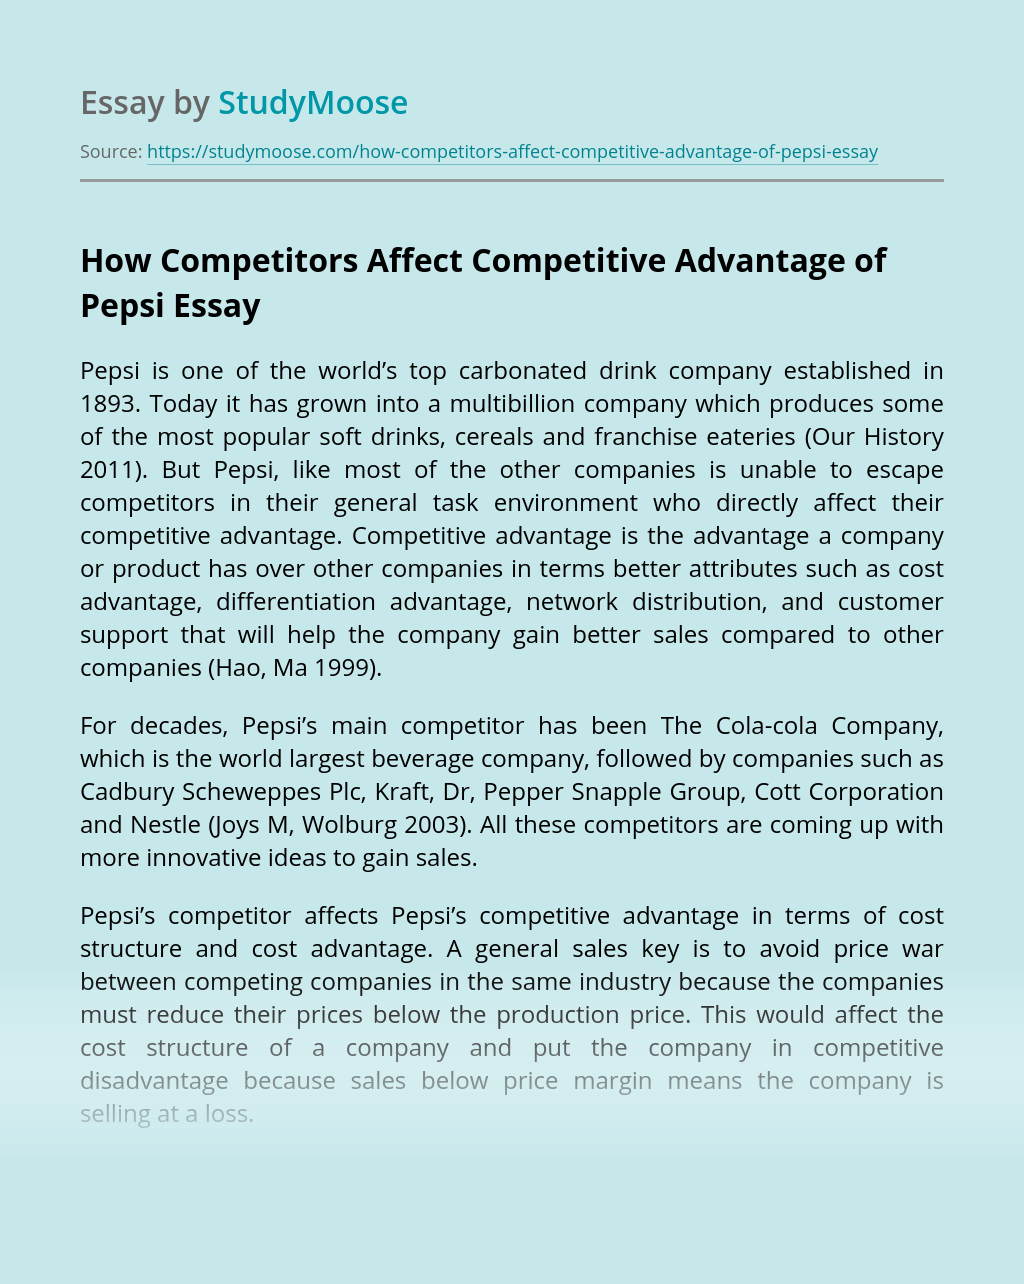 How Competitors Affect Competitive Advantage of Pepsi